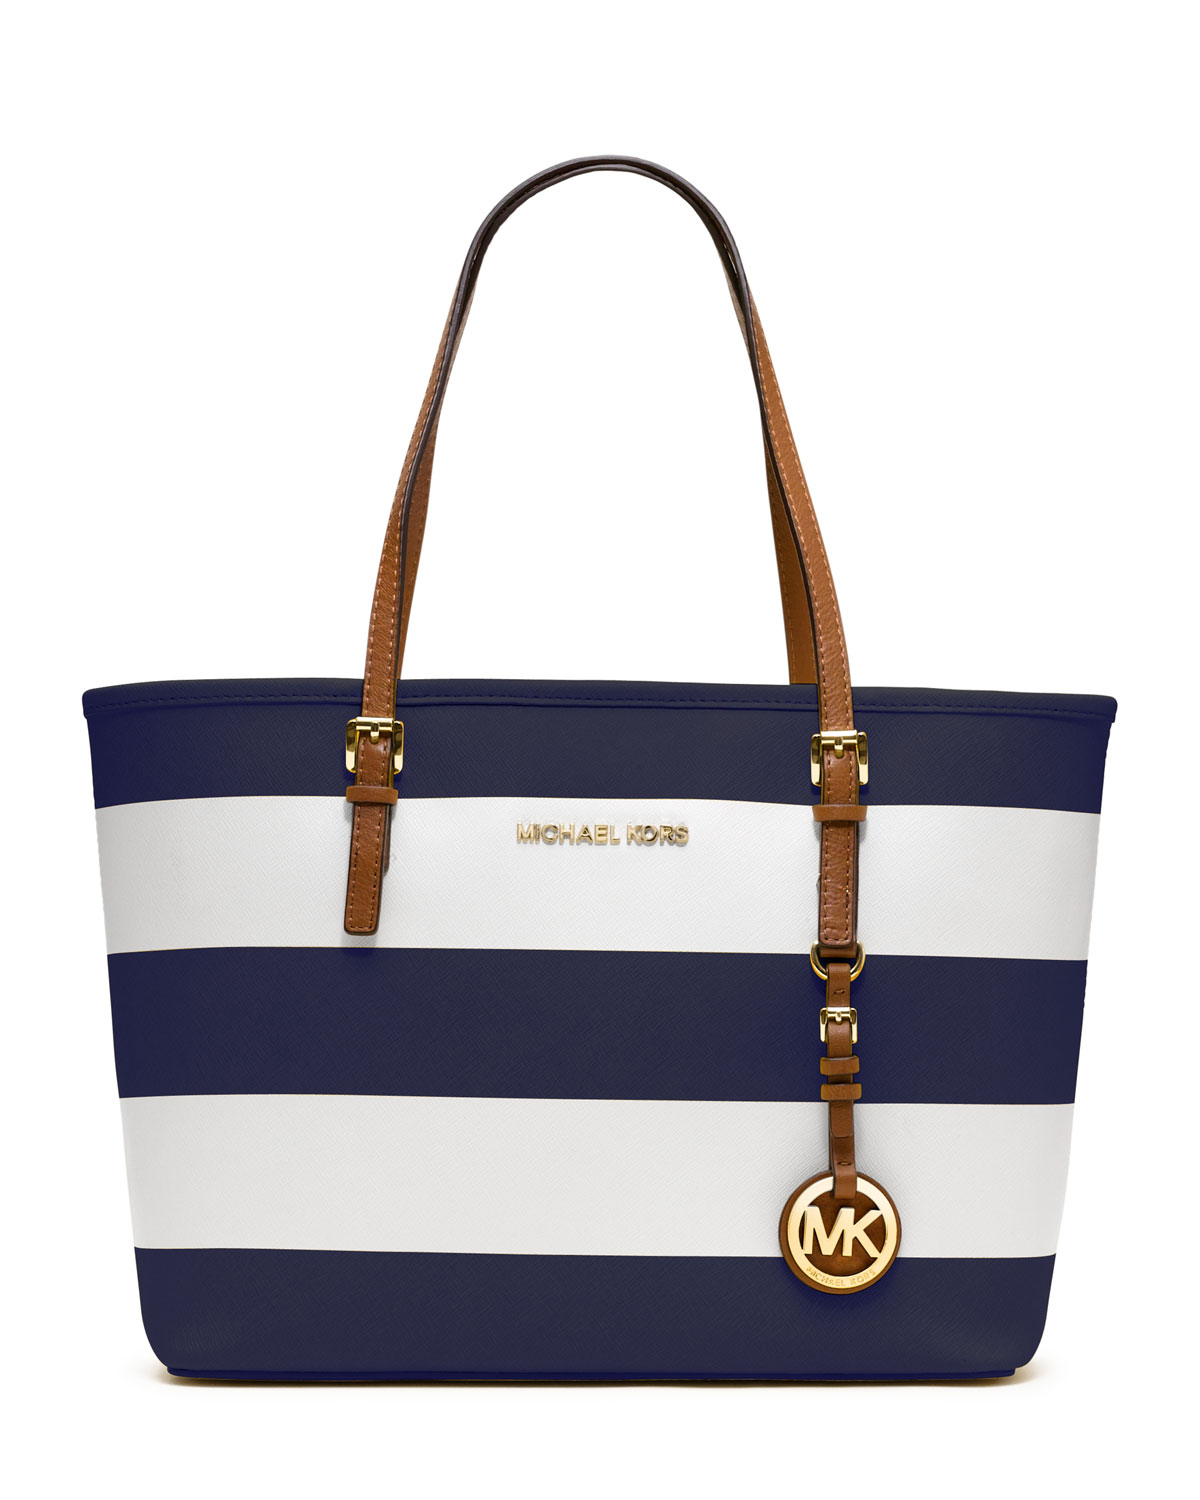 c4cb83f1f92a Lyst - Michael Kors Small Jet Set Striped Travel Tote in Blue